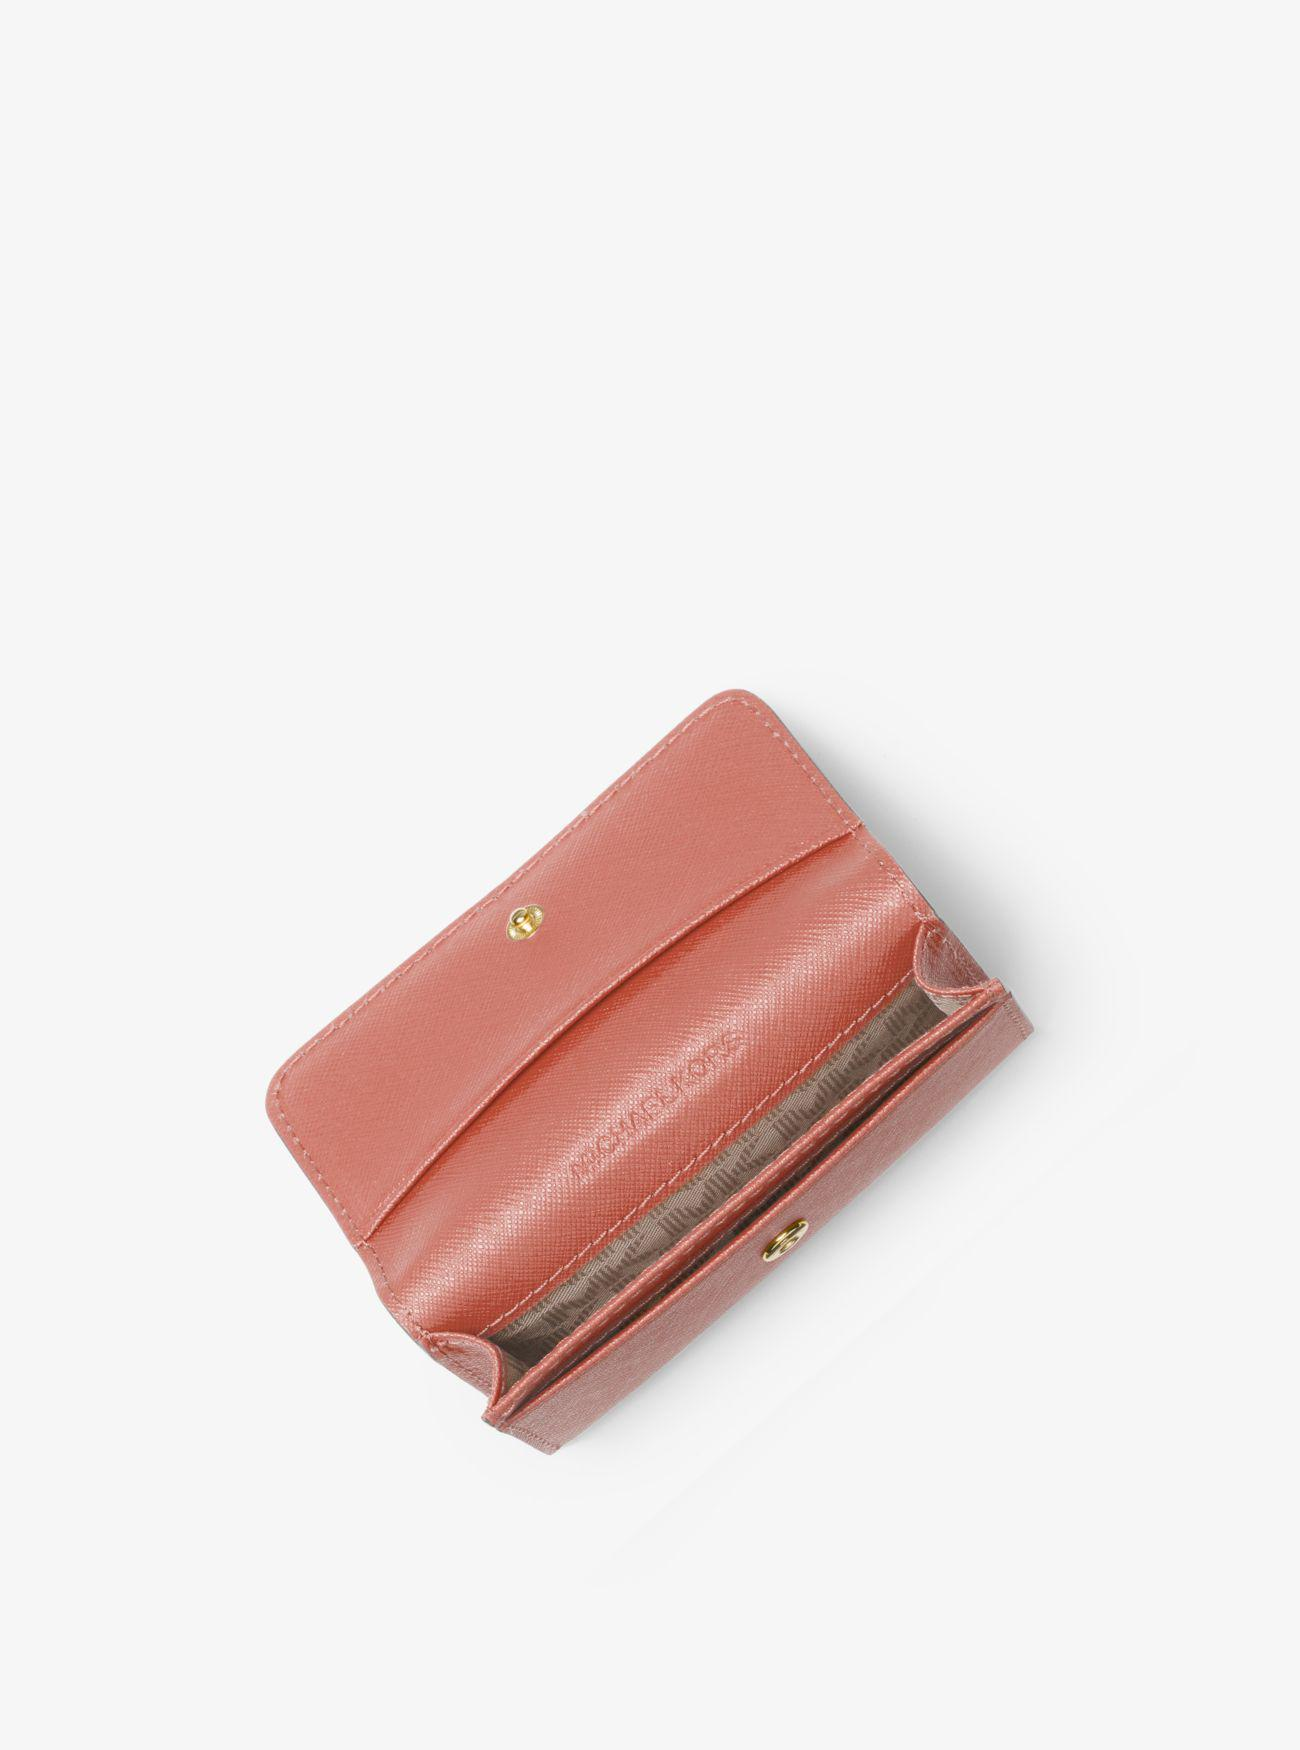 5b3ea8eec2fe Lyst - Michael Kors Jet Set Travel Saffiano Leather Card Holder in Pink